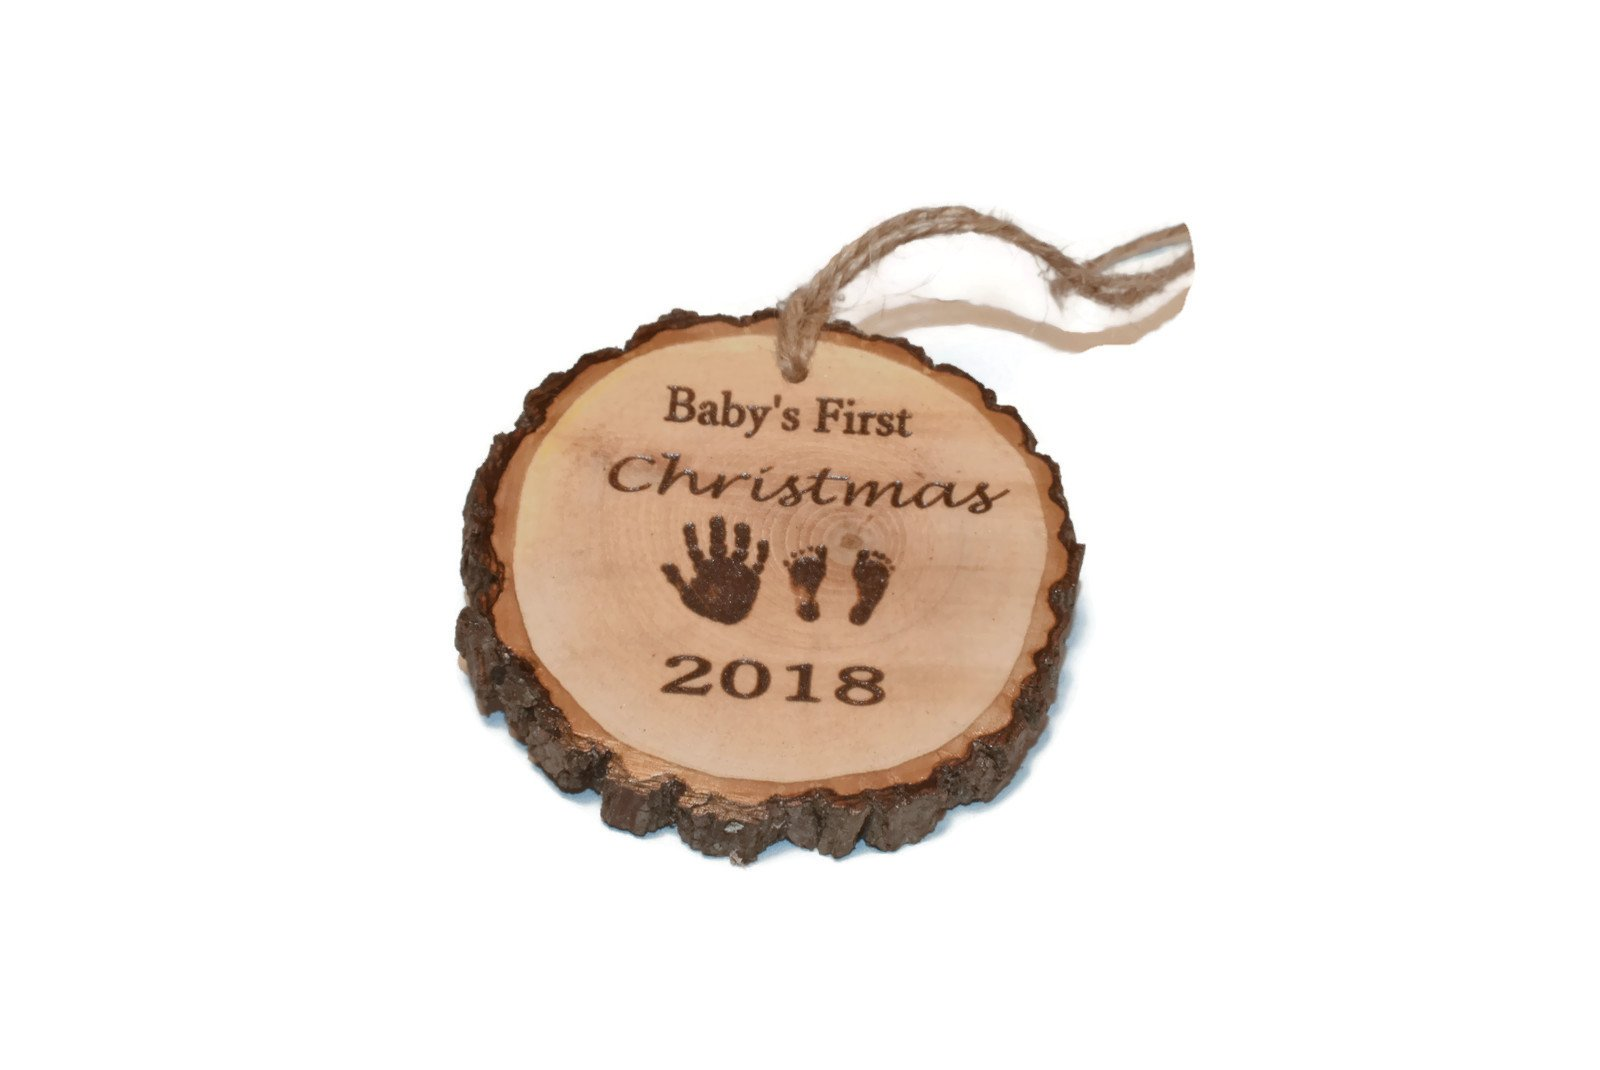 Baby's First Christmas wood slice ornament, hand- feet